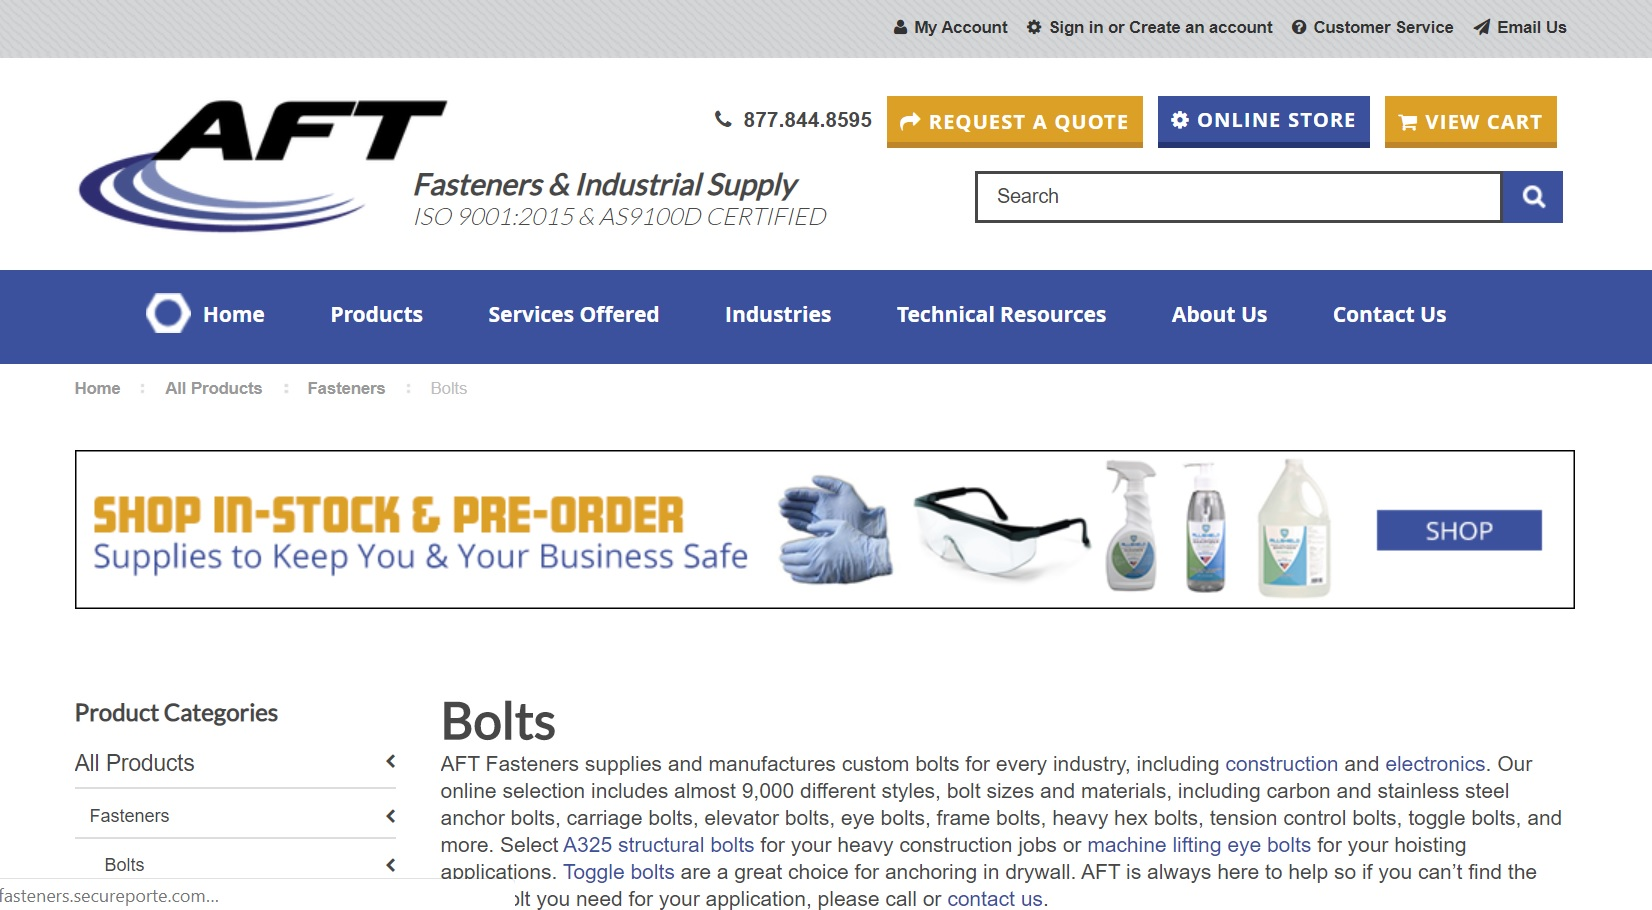 AFT Fasteners